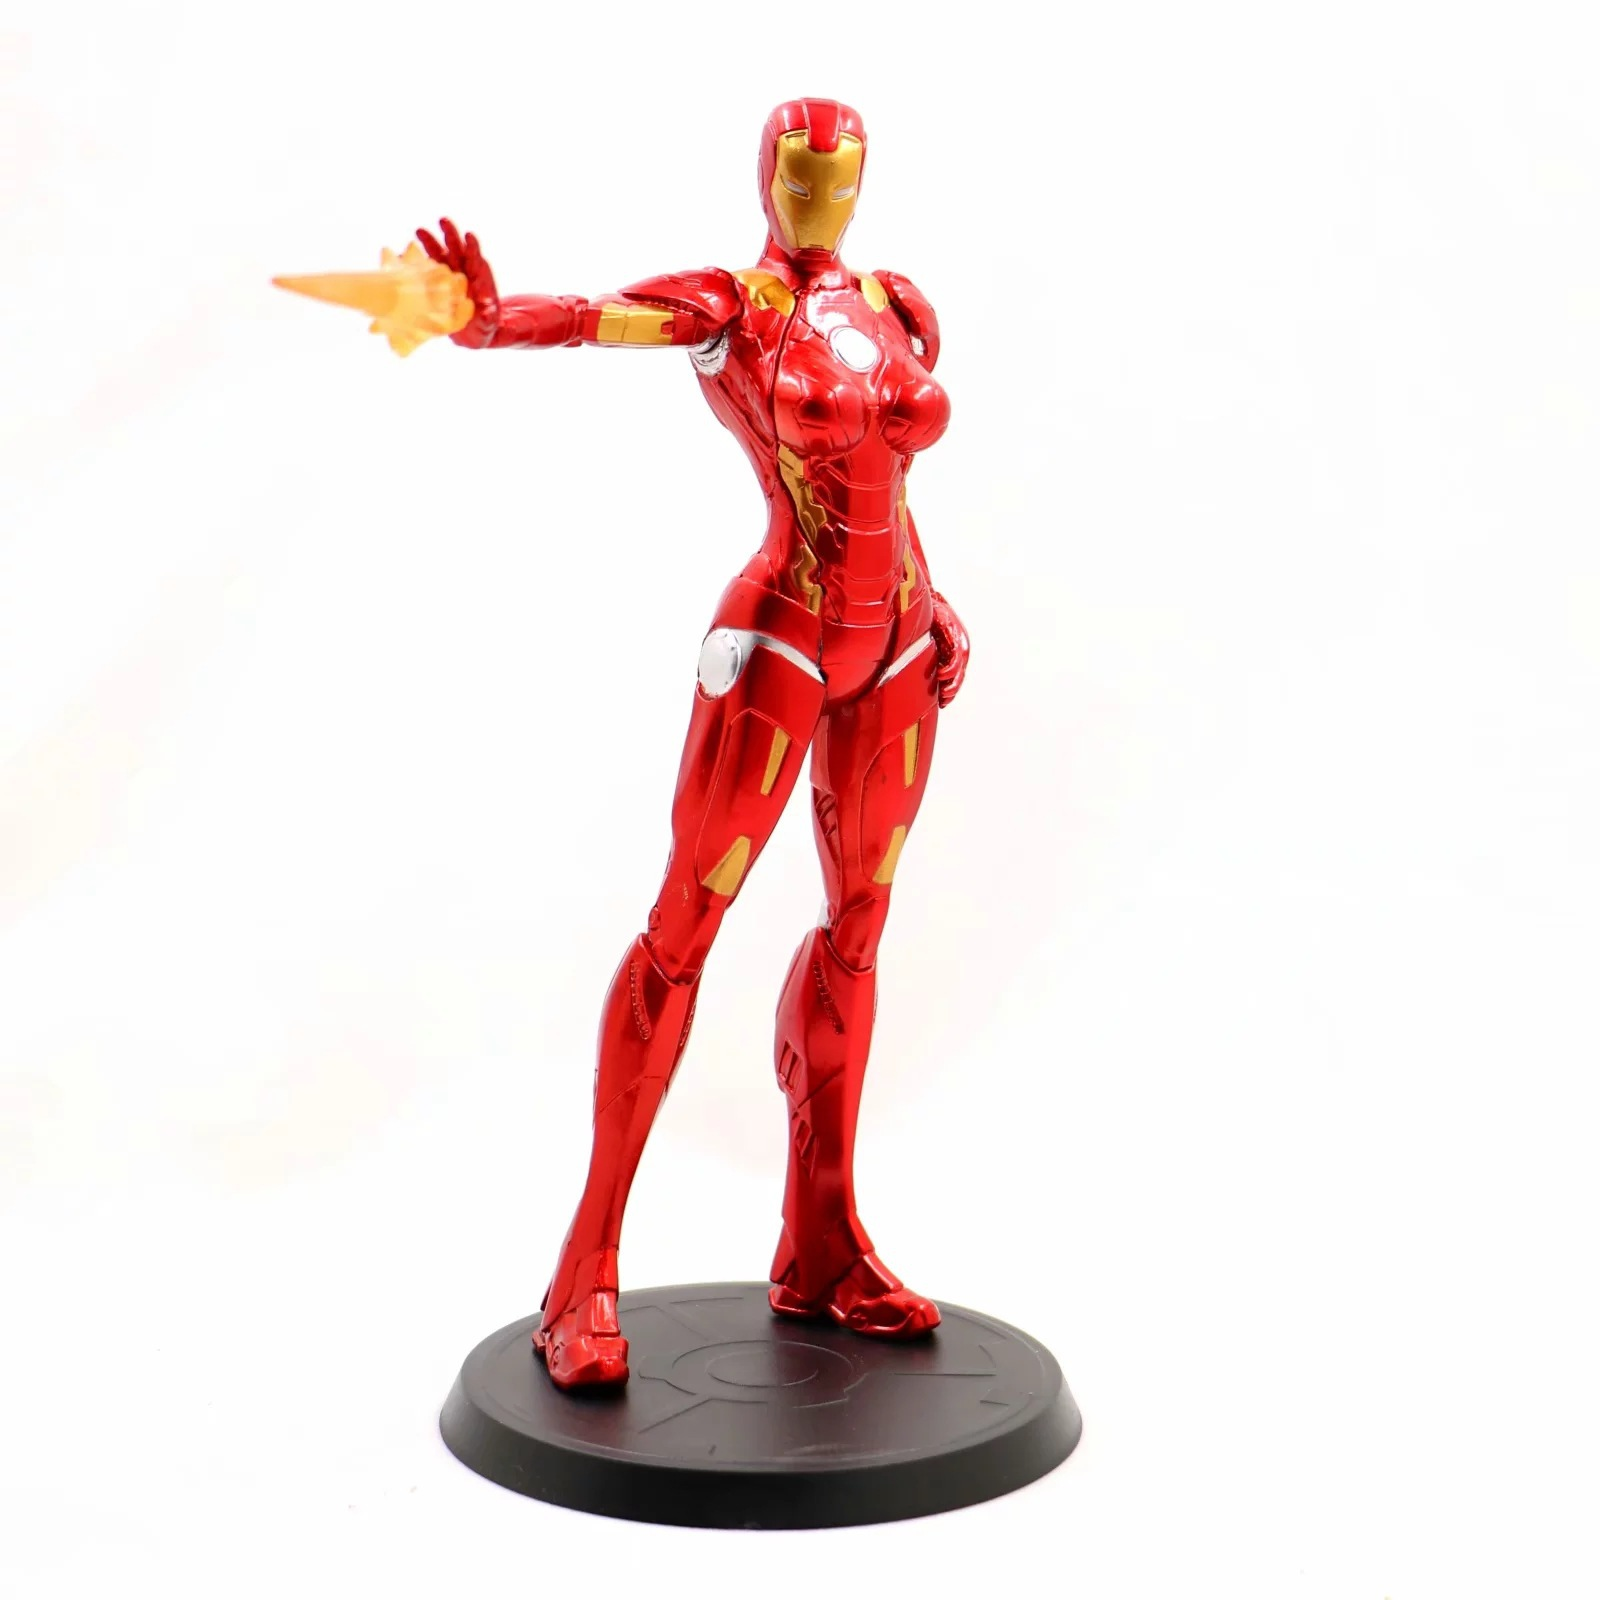 Avengers Iron Lady Ironman Girl Ver Action Figure Toys Doll GK Statue PVC Brinquedos Collection MK8 Super hero Model GiftAvengers Iron Lady Ironman Girl Ver Action Figure Toys Doll GK Statue PVC Brinquedos Collection MK8 Super hero Model Gift